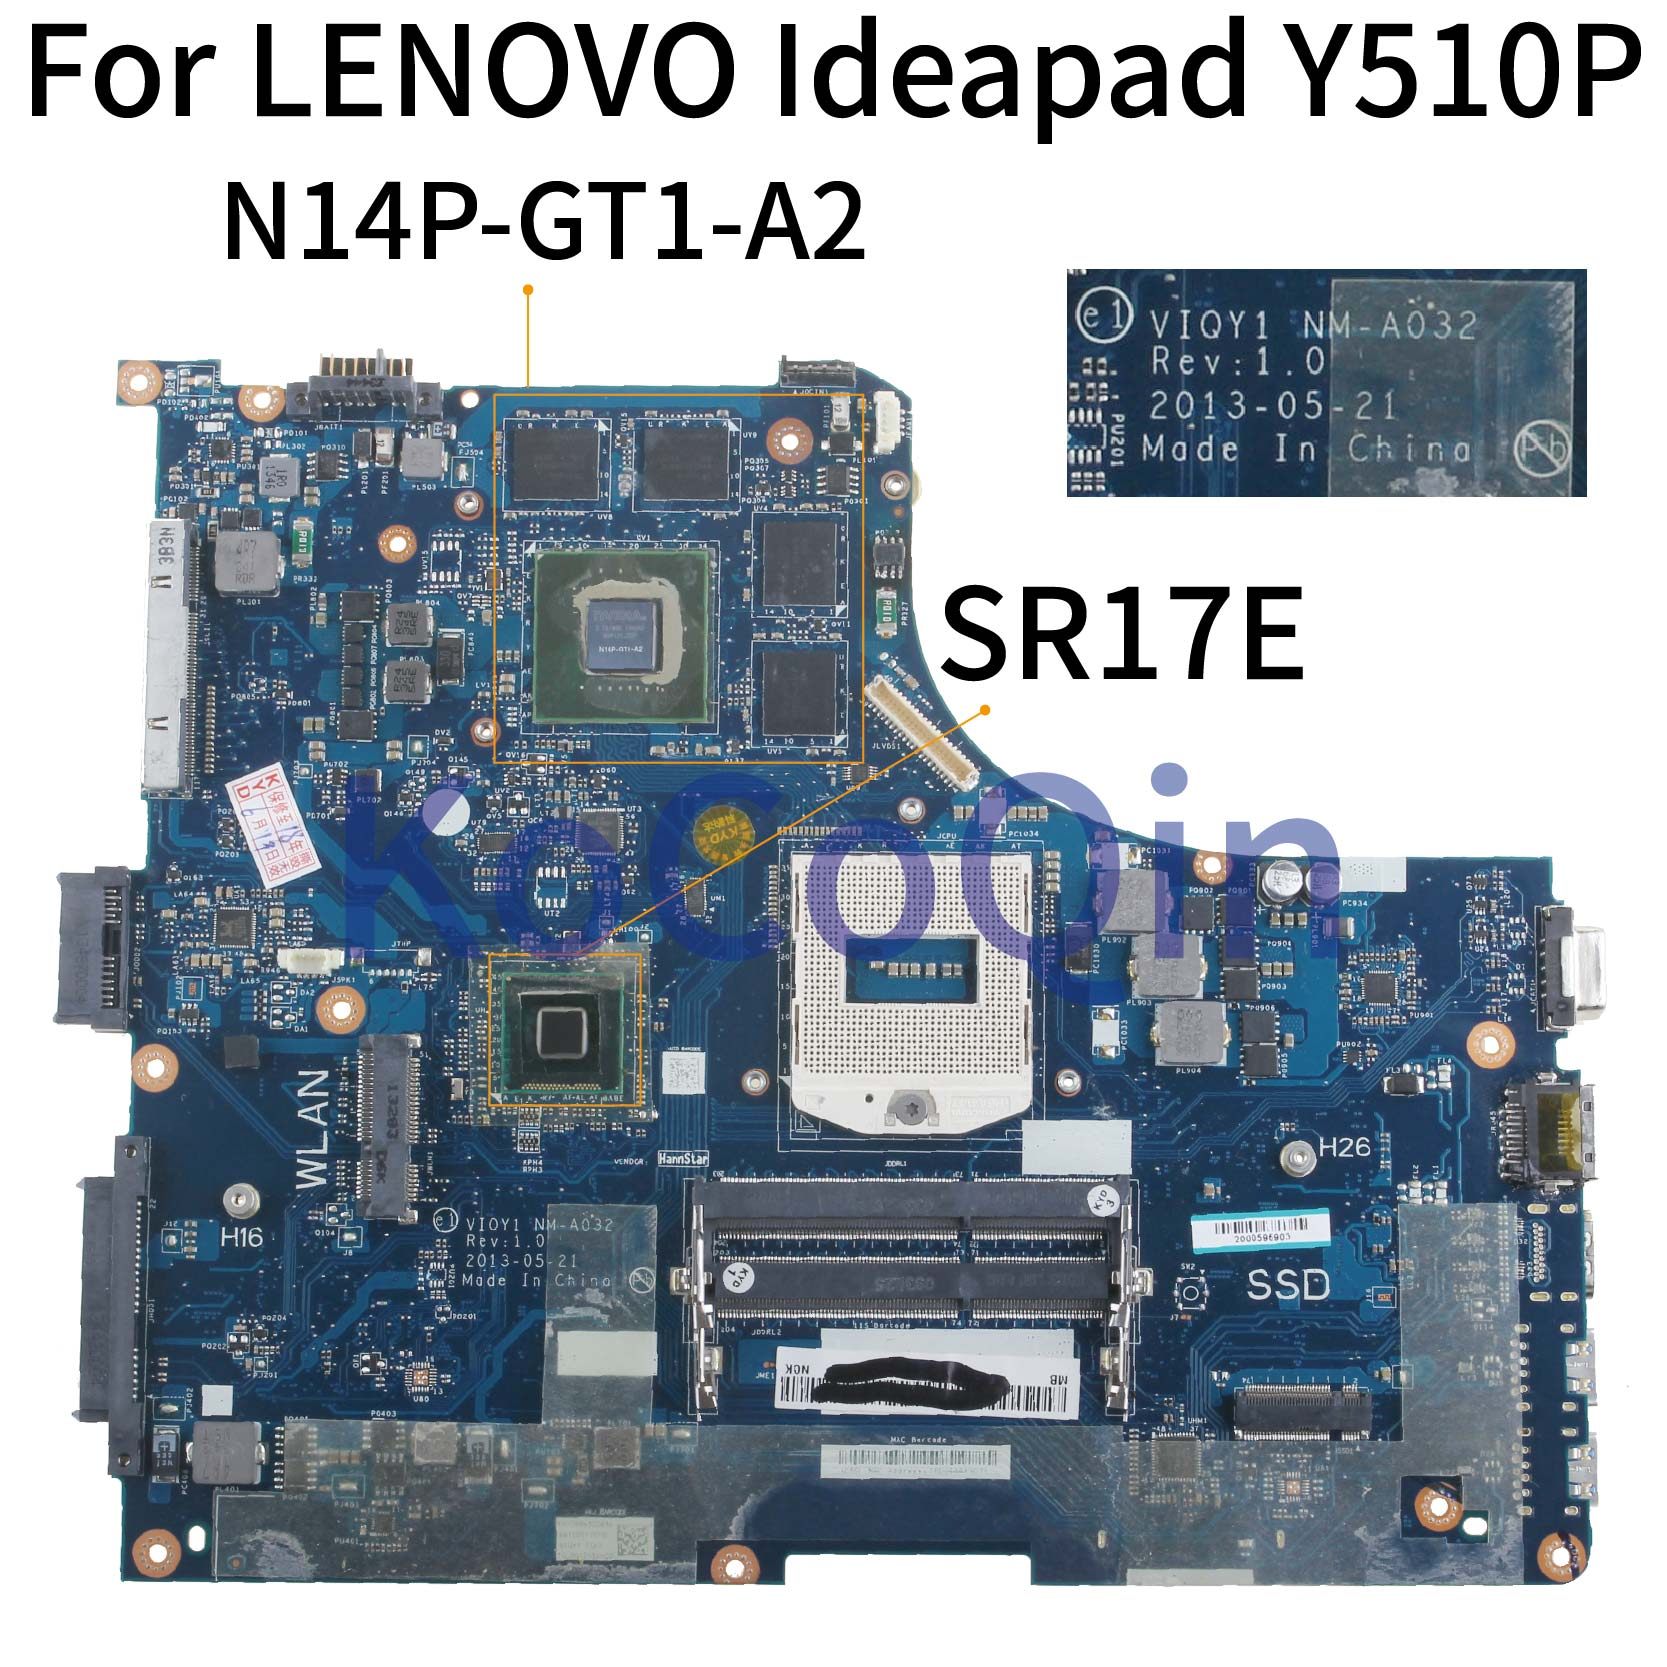 KoCoQin Laptop Motherboard For LENOVO Ideapad Y510P  I7 Support Mainboard VIQY1 NM-A032 N14P-GT1-A2 SR17E